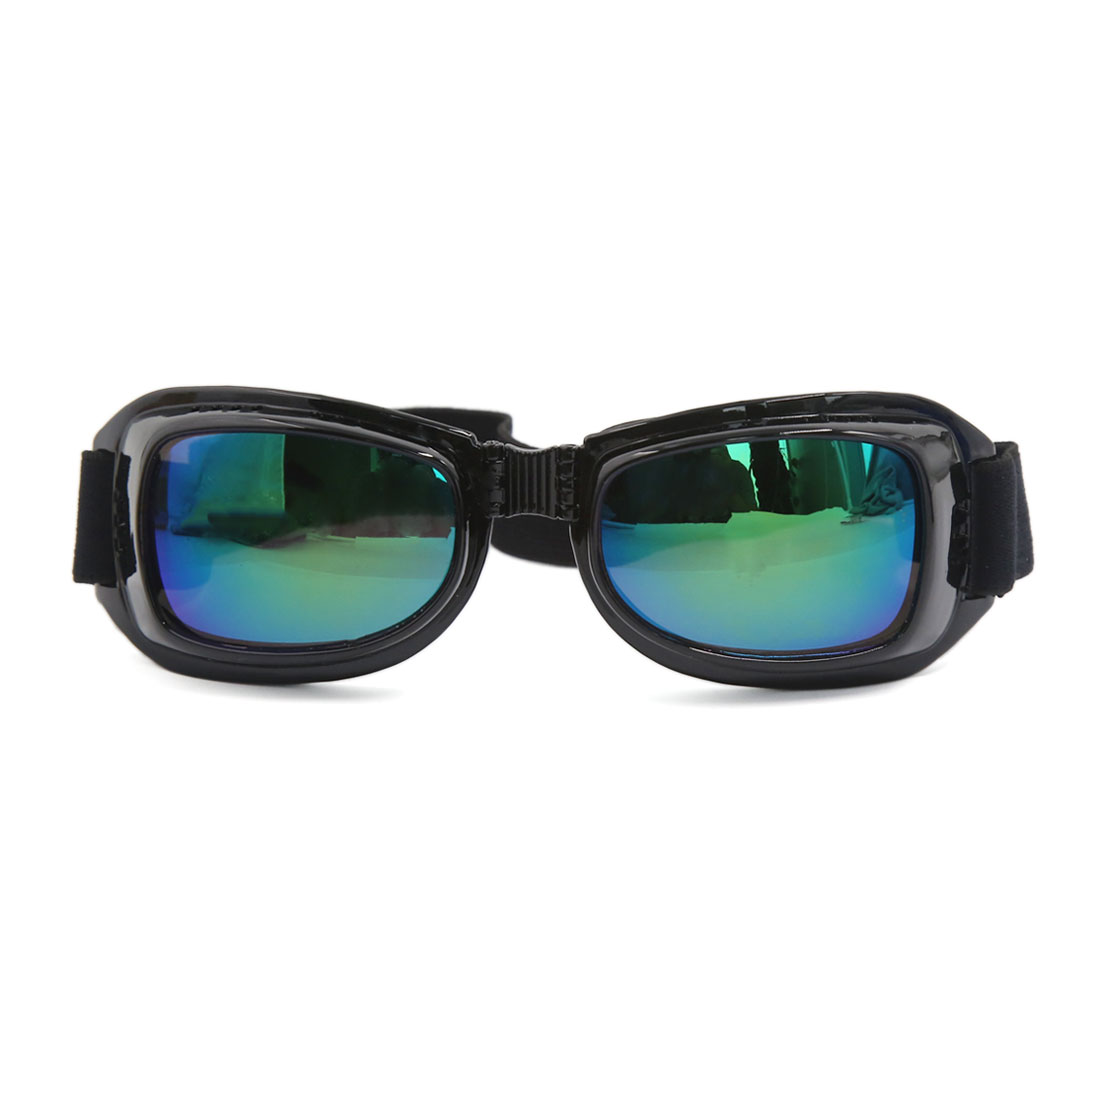 Foldable UV Protective Outdoor Glasses Portable Motorcycle Dust-proof Goggles Eyewear